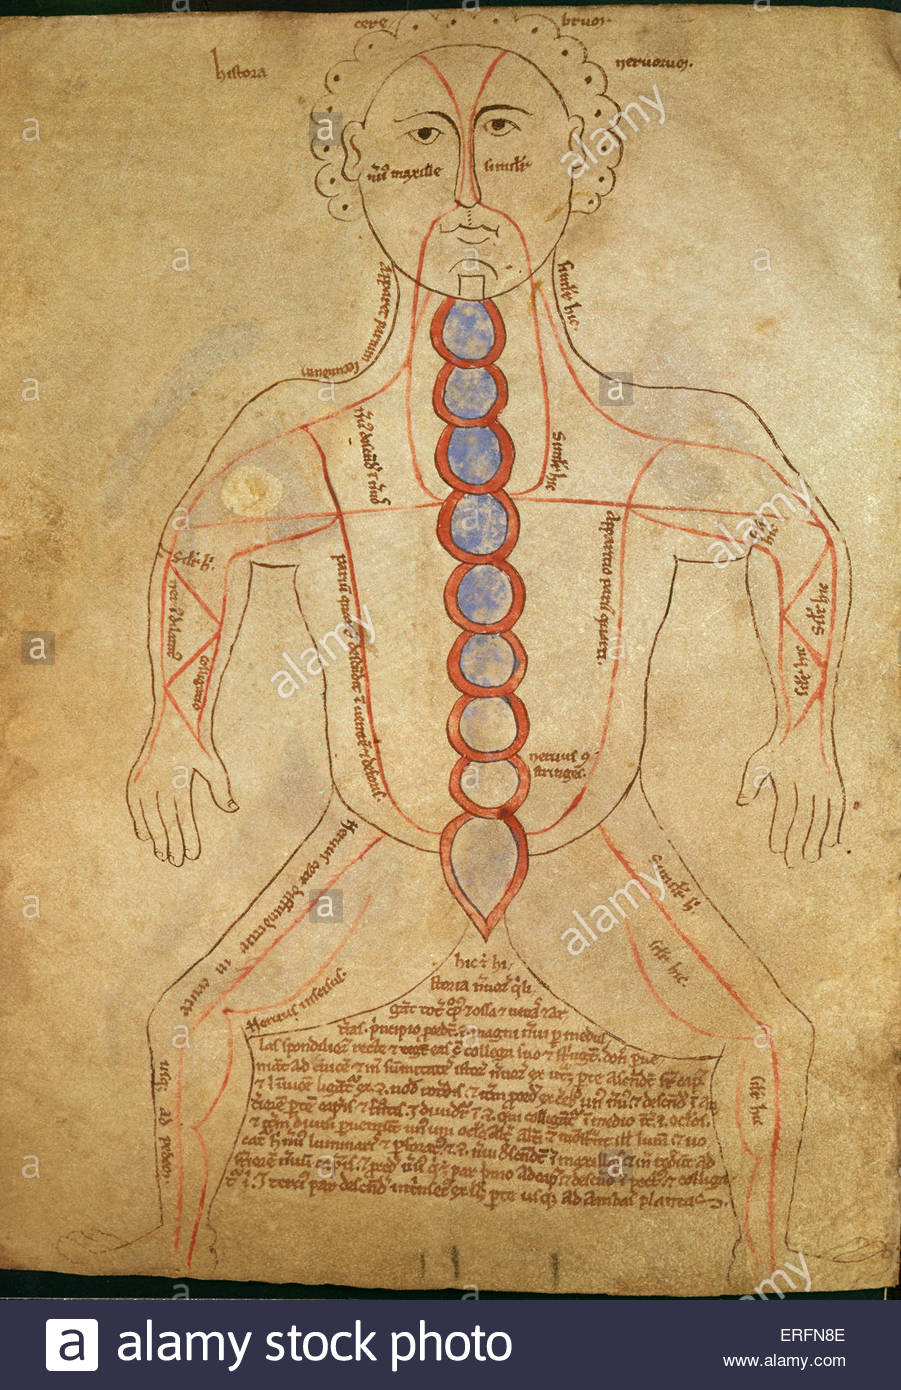 Anatomy chart by Galen, 2nd century. Private collection. Galenos / Galenus: Greek physician, AD 129 - ca. 216. - Stock Image